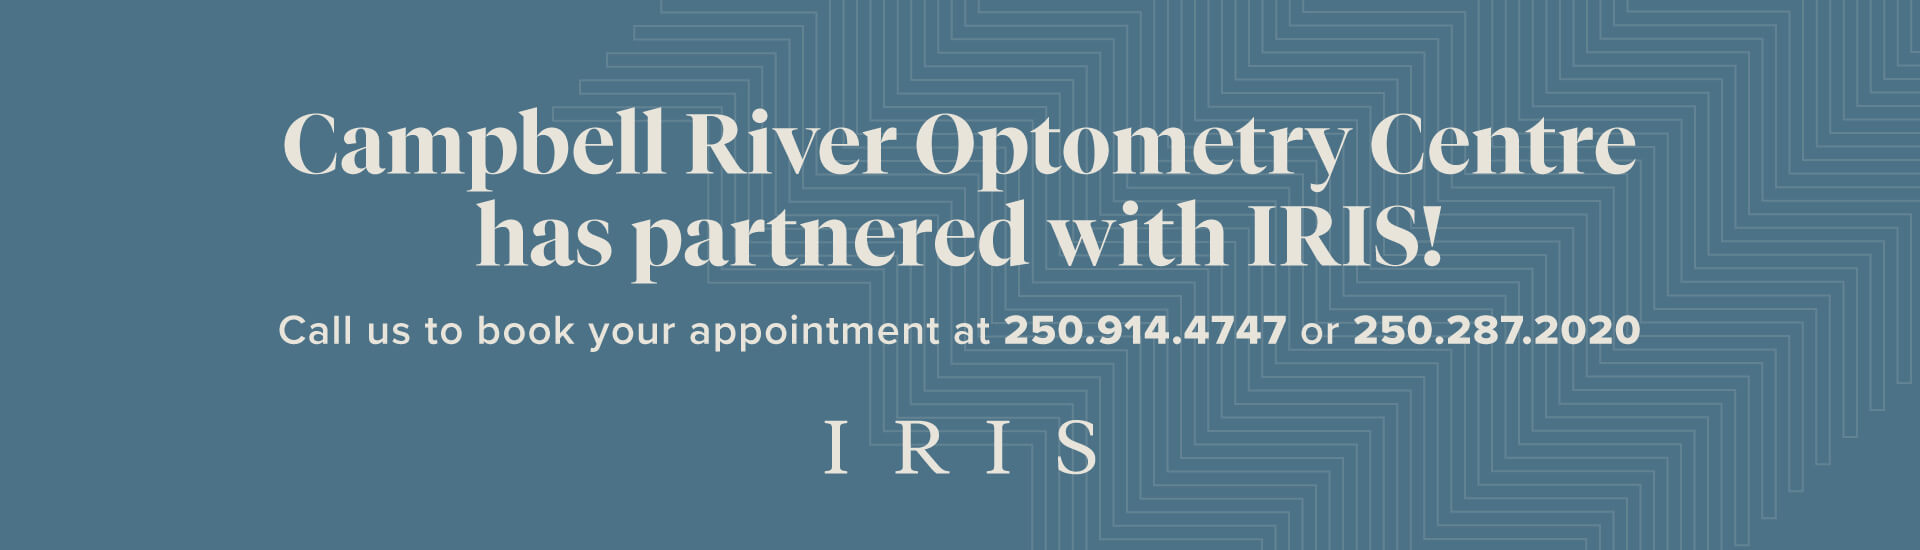 Campbell River Optometry Centre has partnered with IRIS!